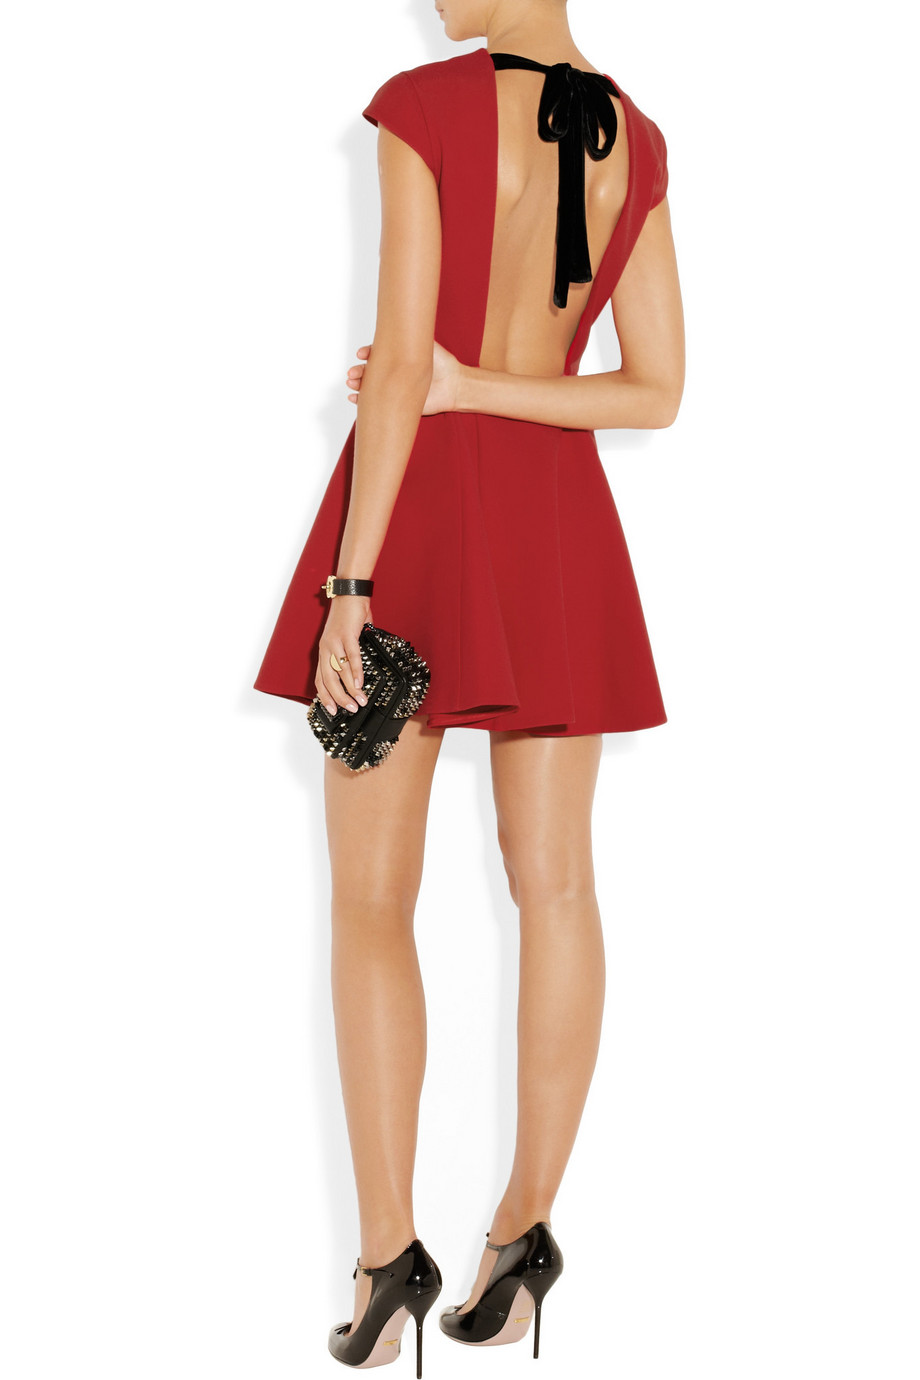 MIU MIU Open-back cady dress | Fancy Friday - Valentine's Day Dresses